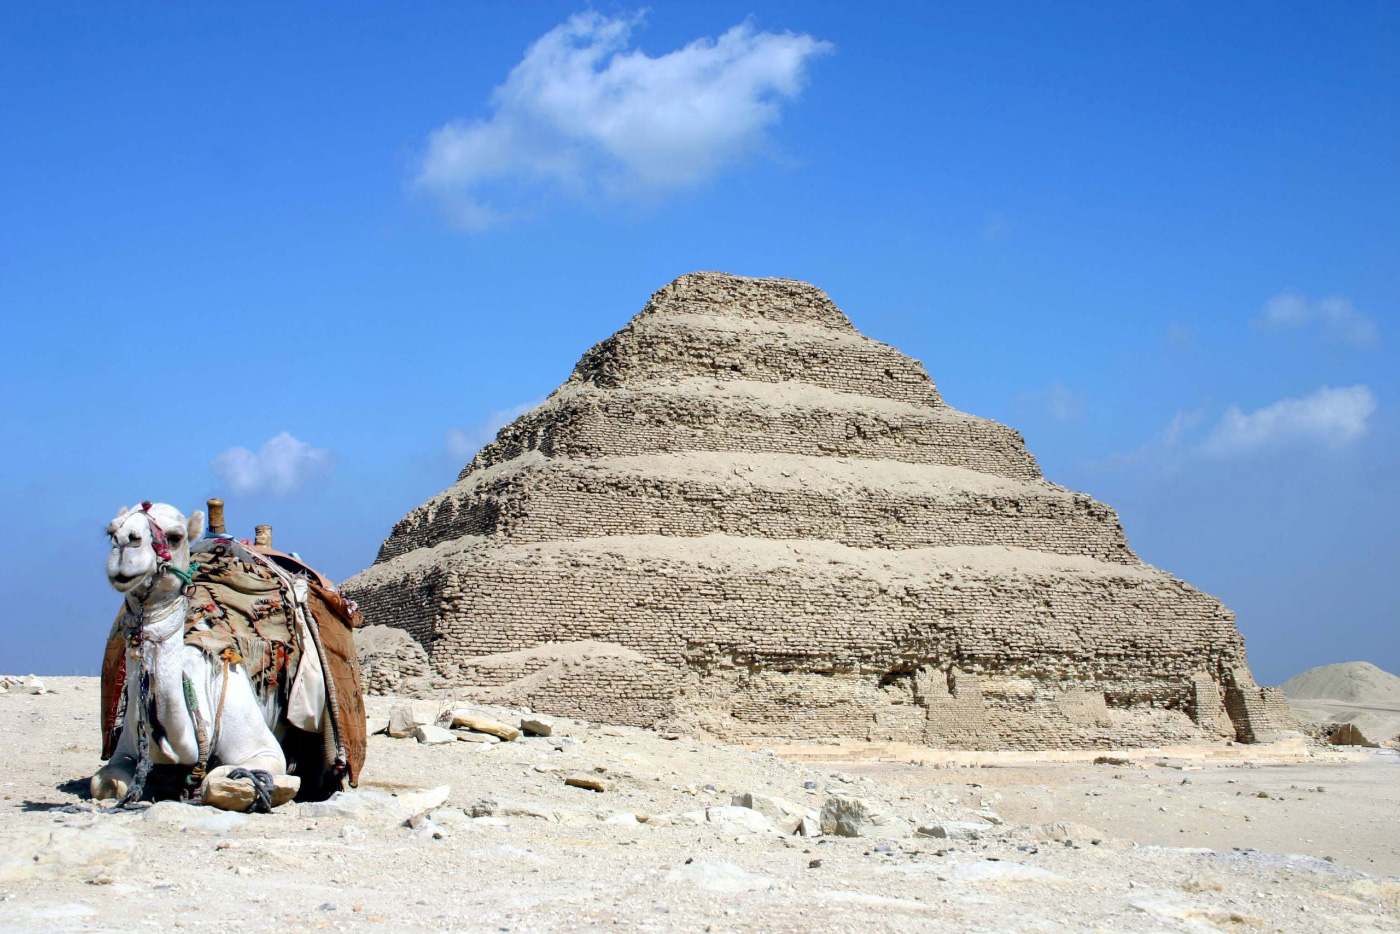 A camel next to a pyramid